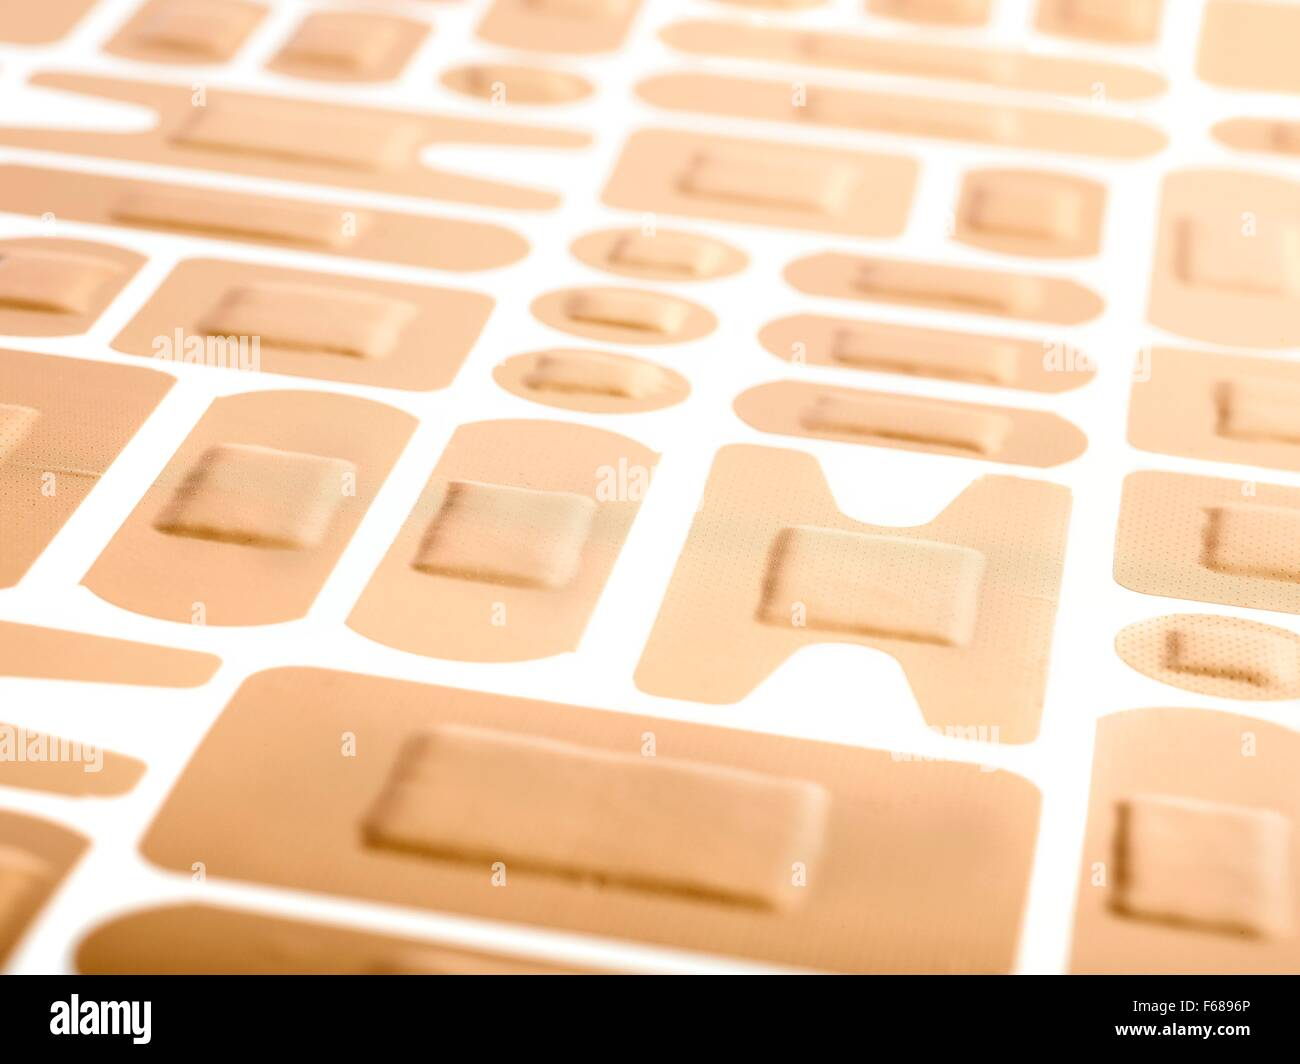 Selection of adhesive plasters. - Stock Image